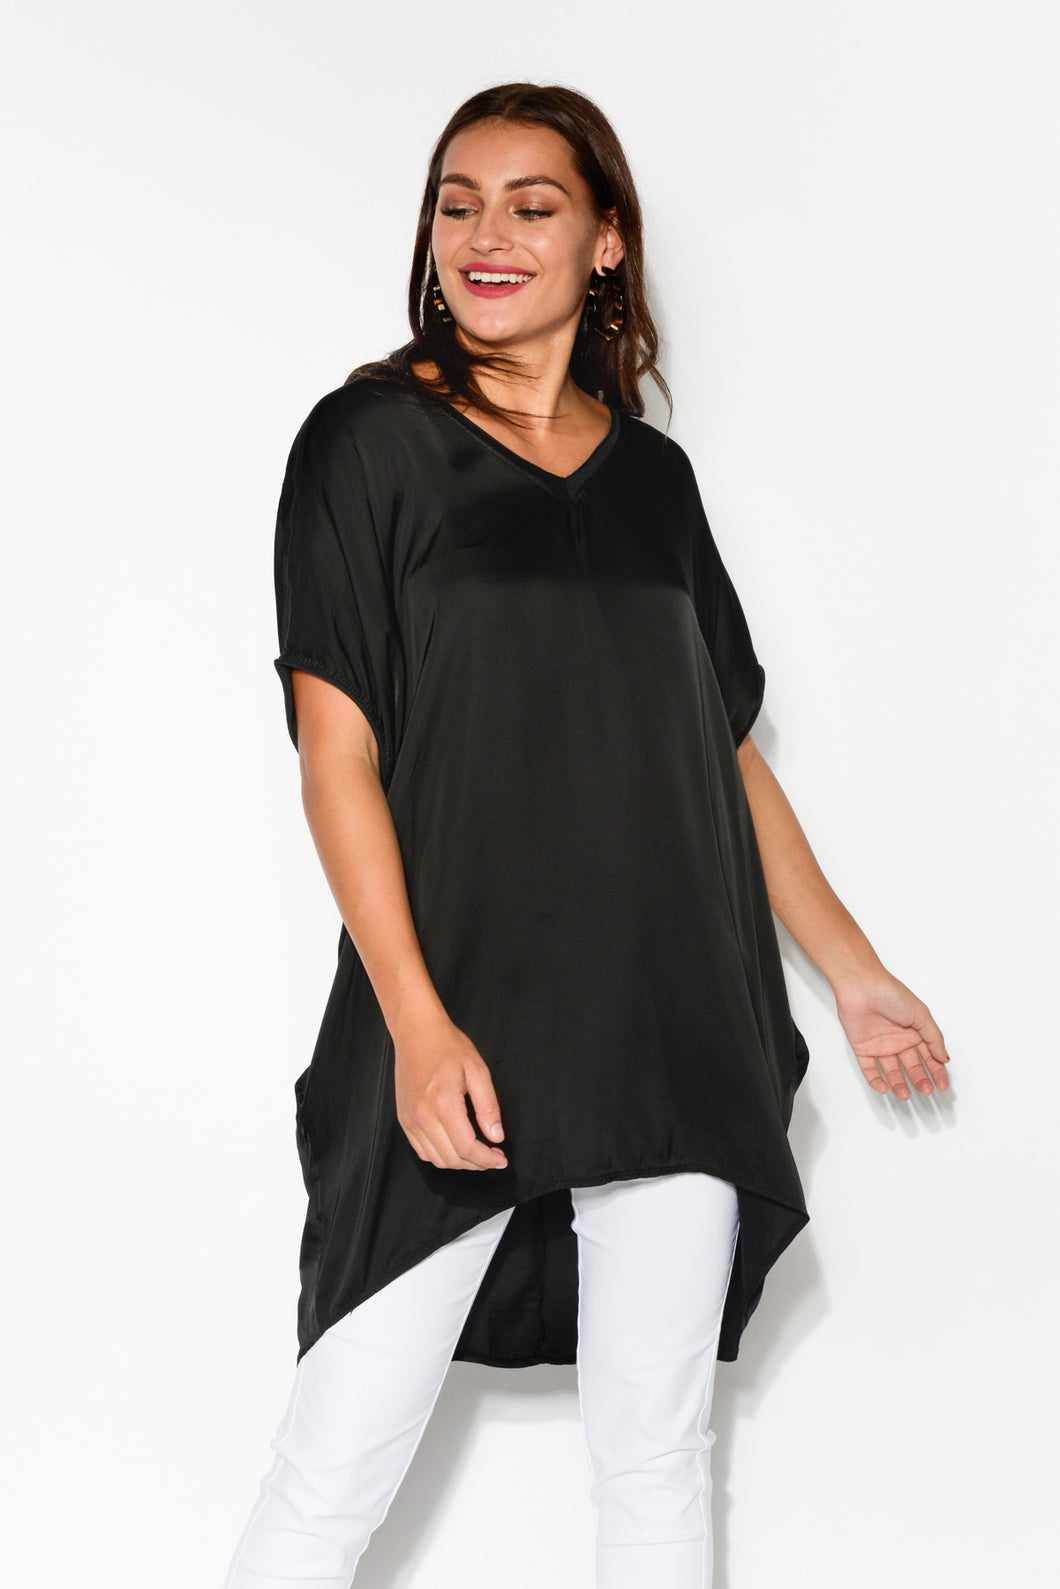 Black Silk Blend Pocket Top - Blue Bungalow